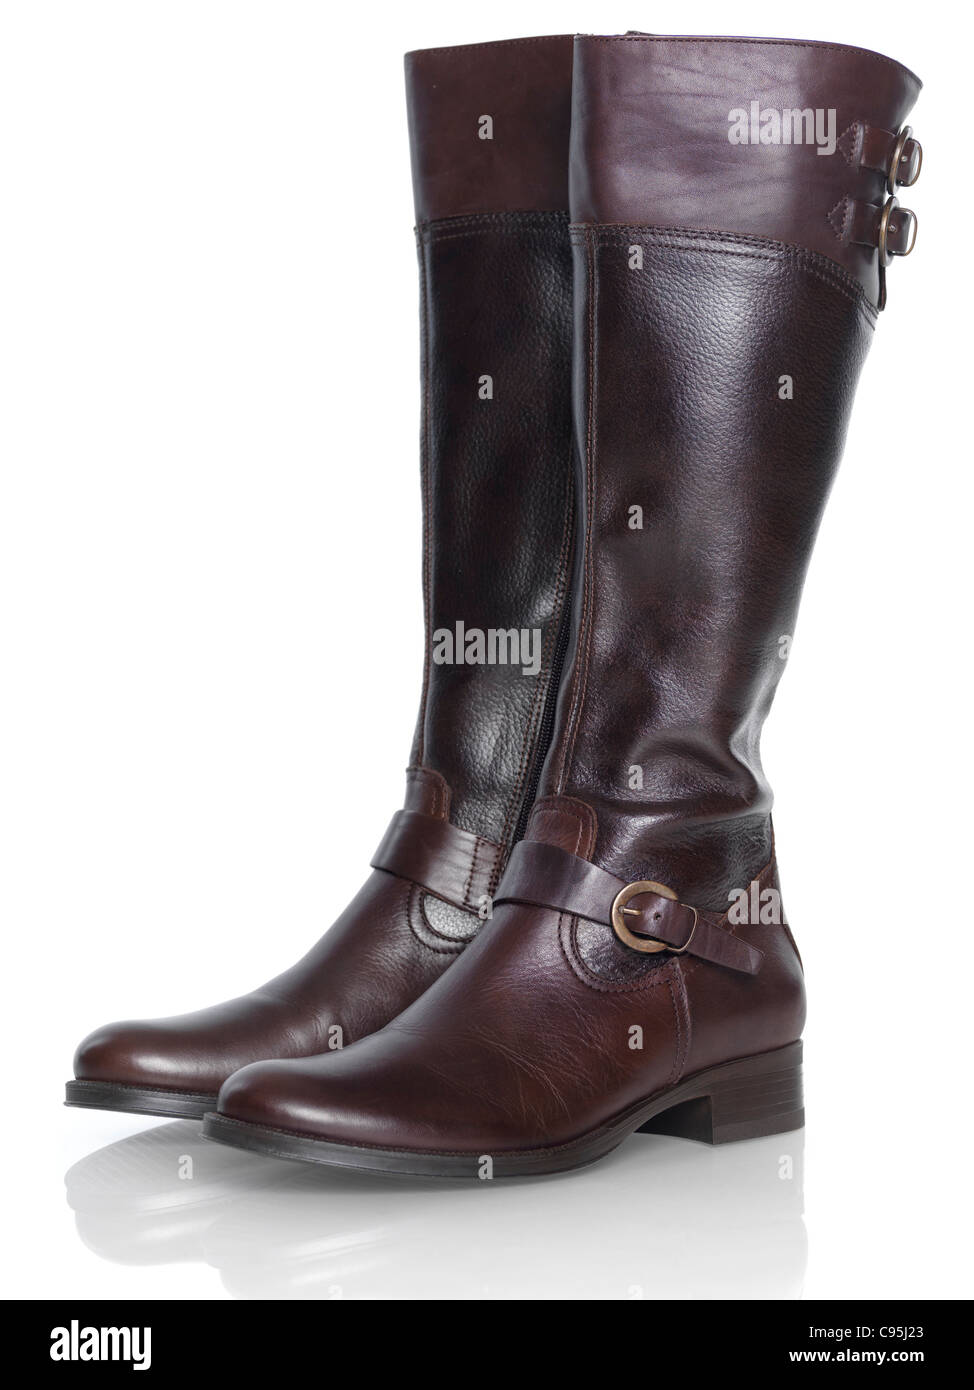 knee length brown leather fashion womens boots isolated on